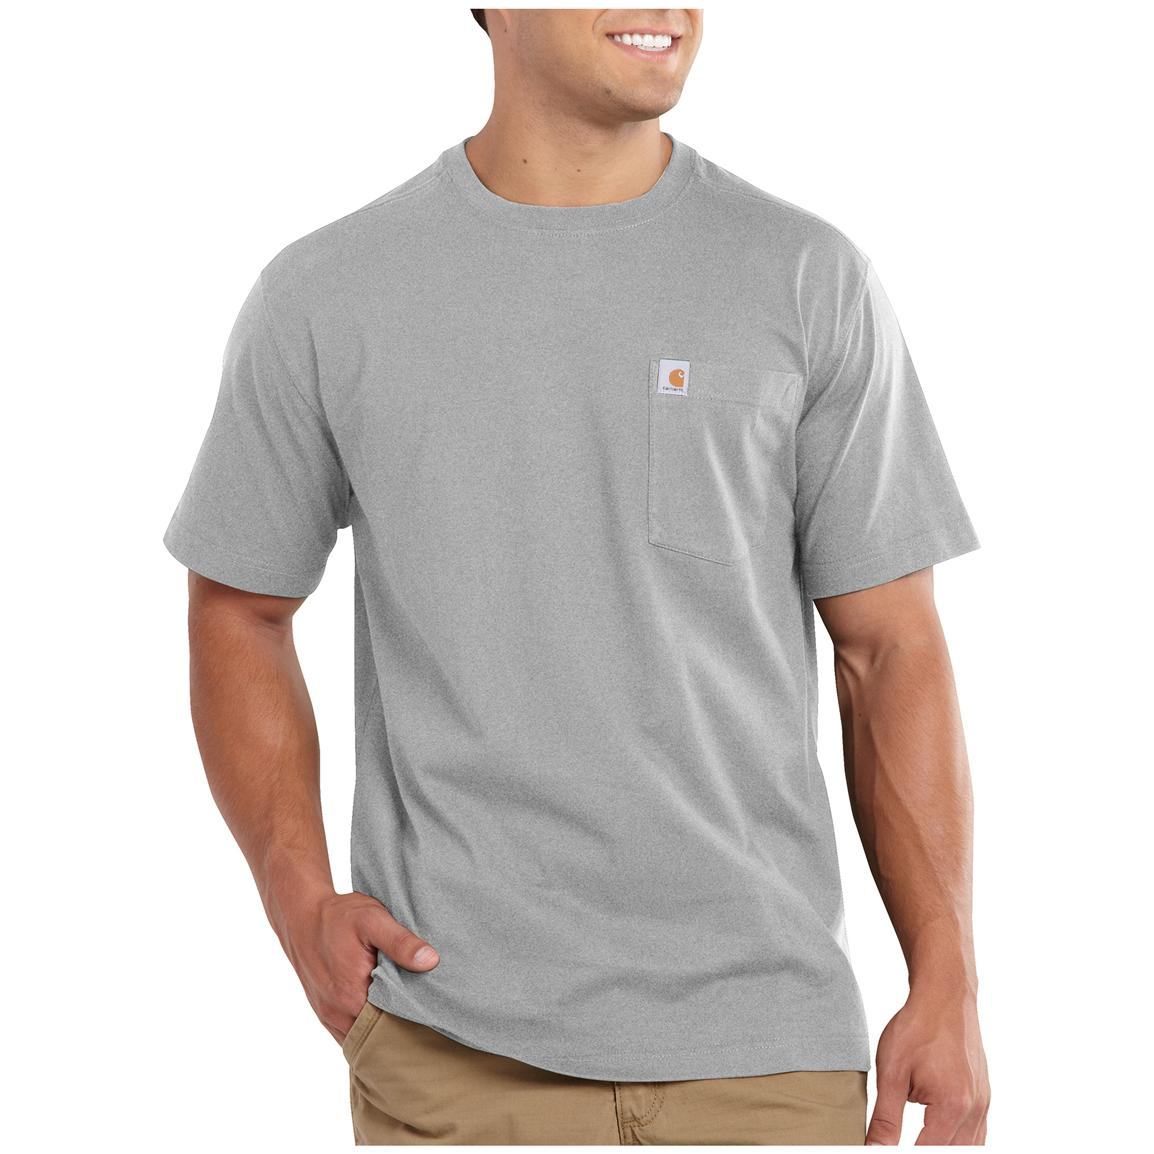 Carhartt Maddock Pocket Short-sleeve T-shirt, Heather Gray